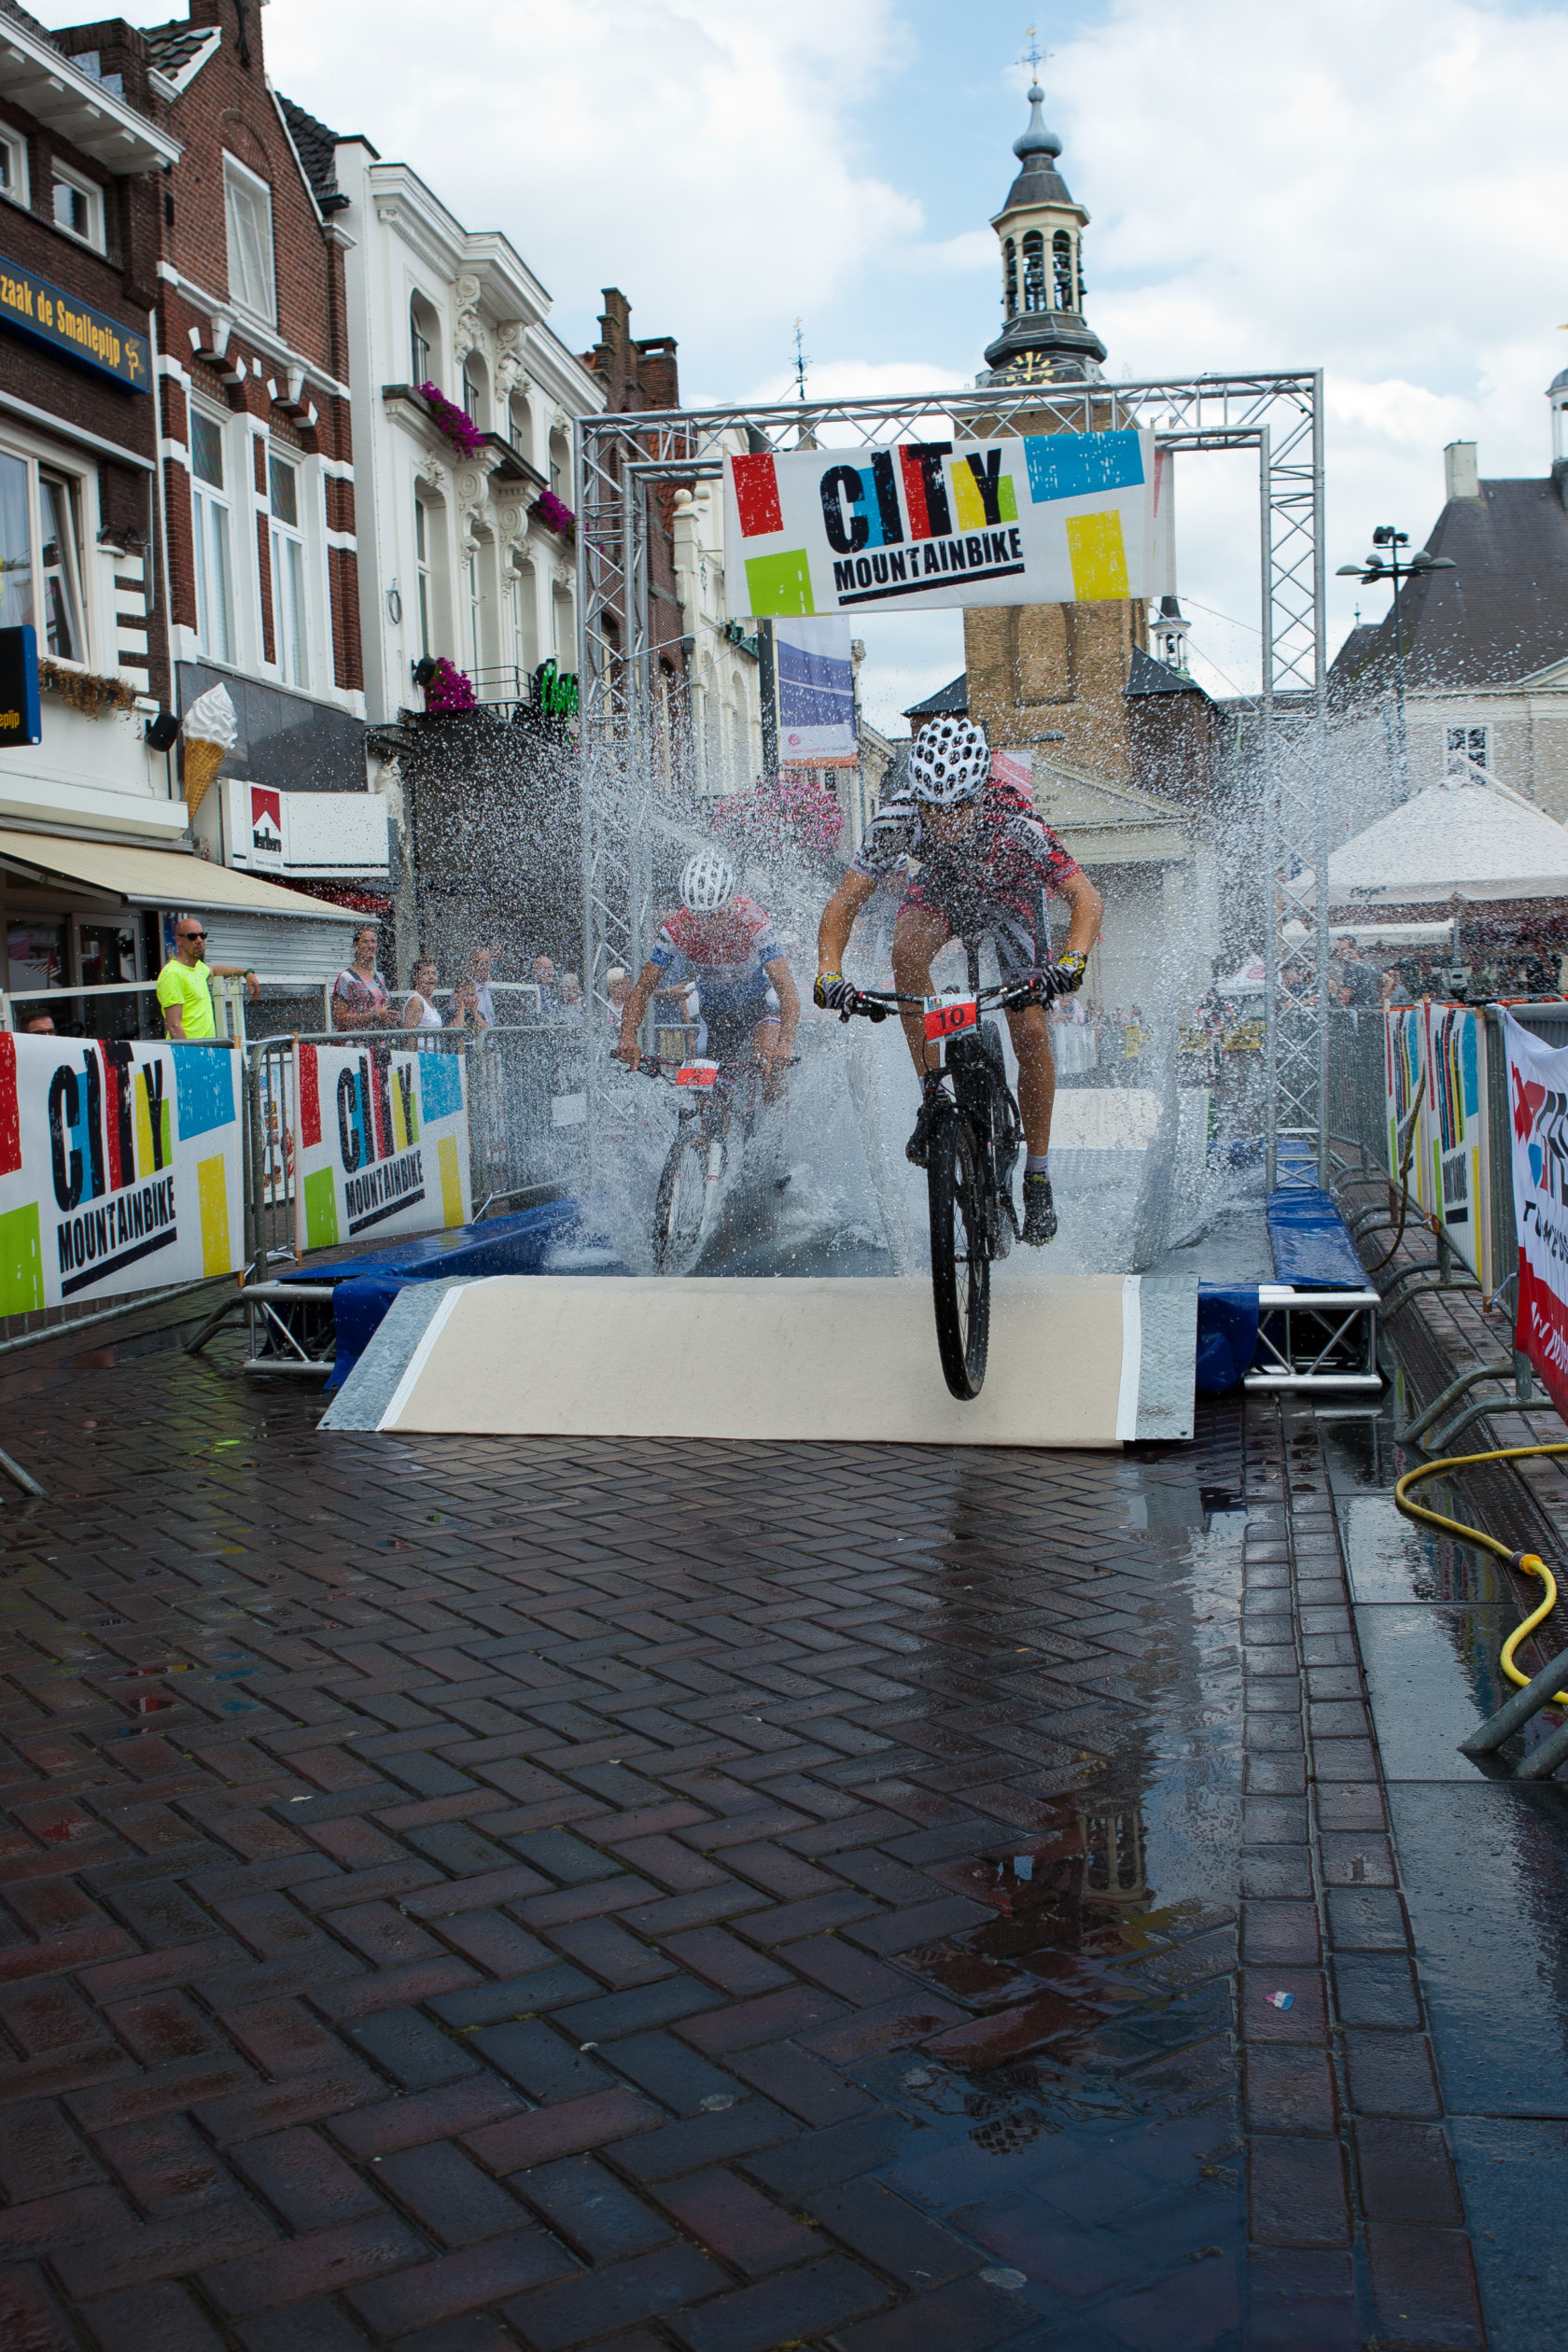 City Mountainbike RoosendaalPodium 72dpiLoek PIctures Belgium 040814 5